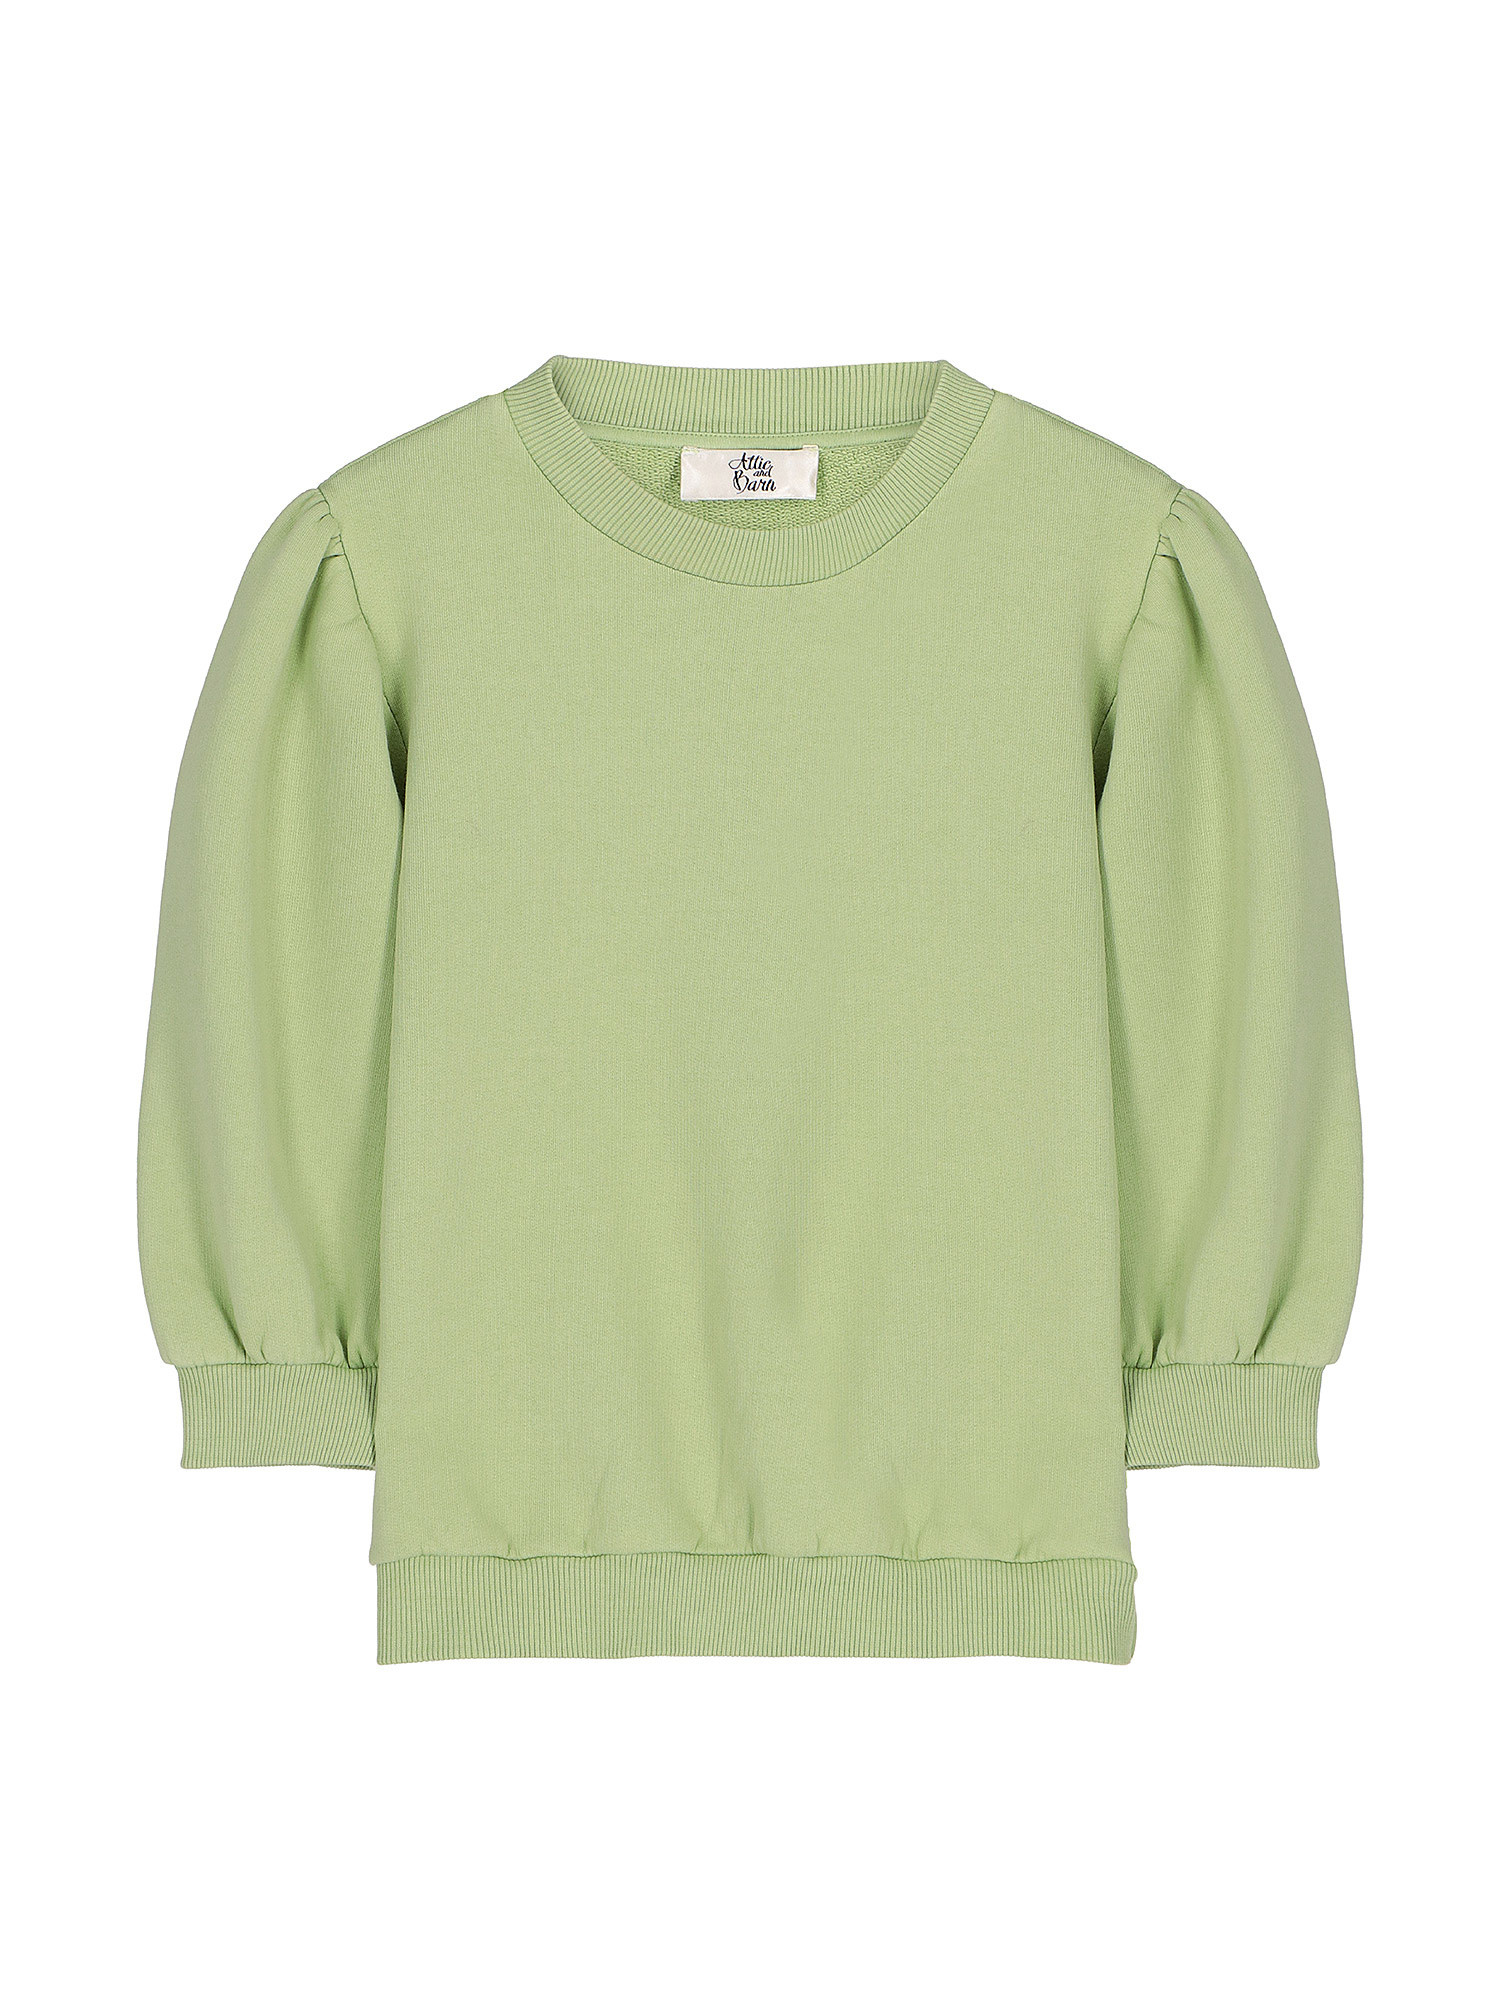 Maglia donna in cotone, Verde lime, large image number 0